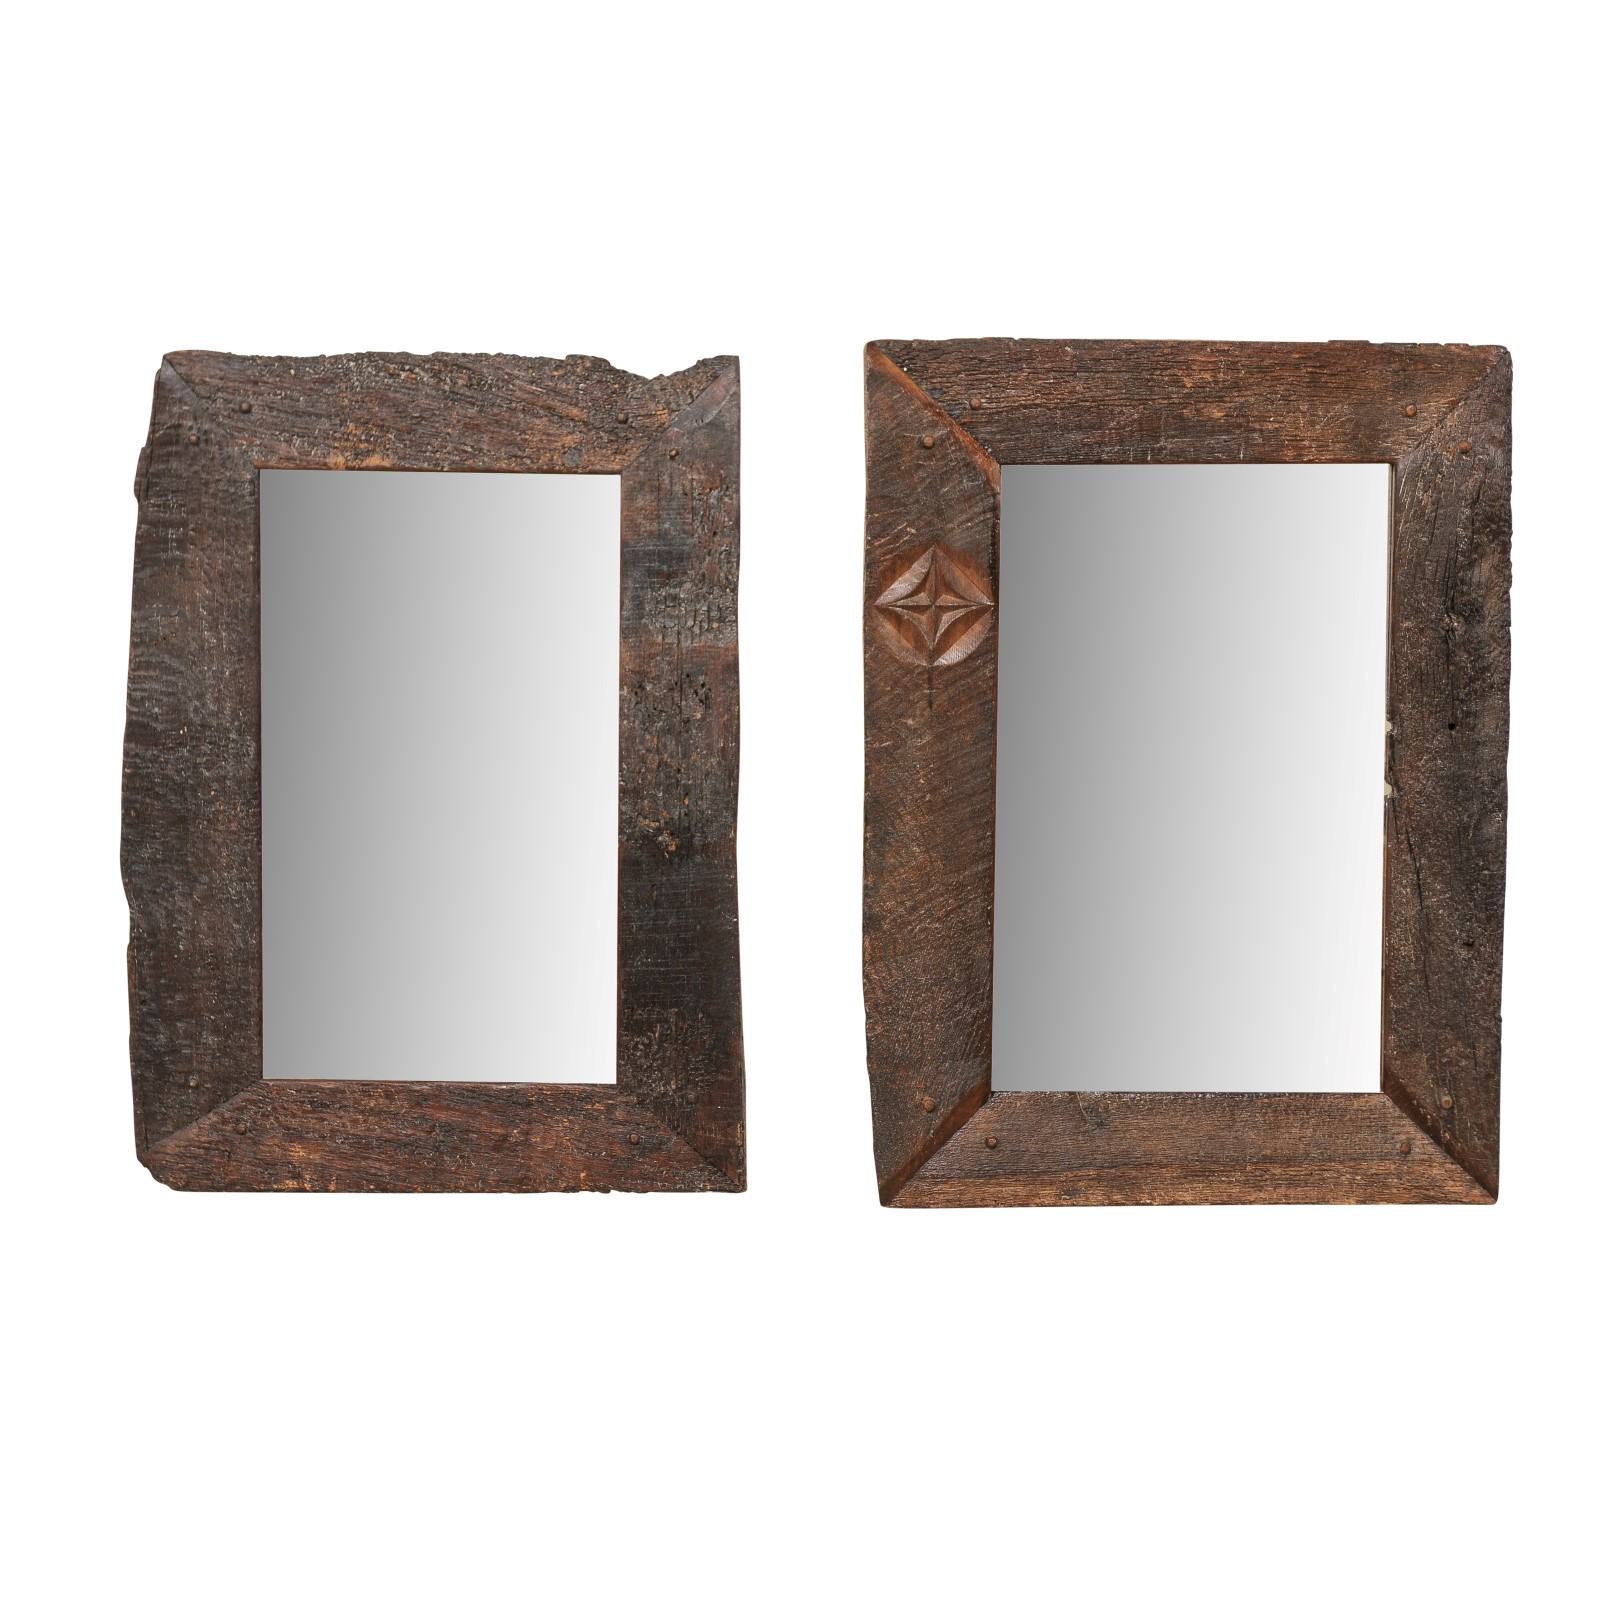 Single Reclaimed Spanish Board Mirror